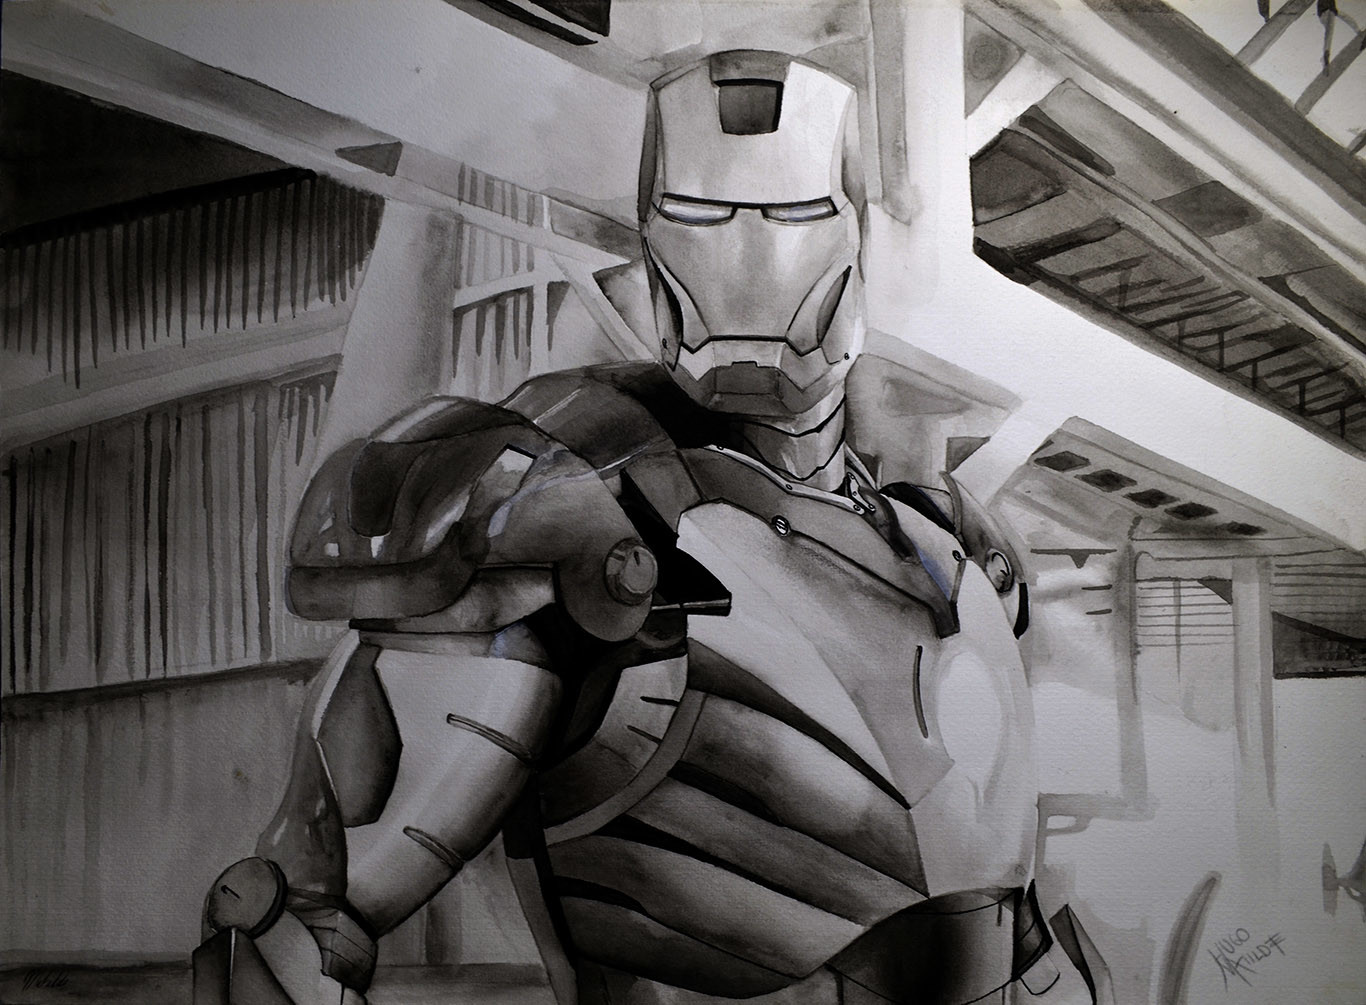 Hugo matilde iron man by hugo